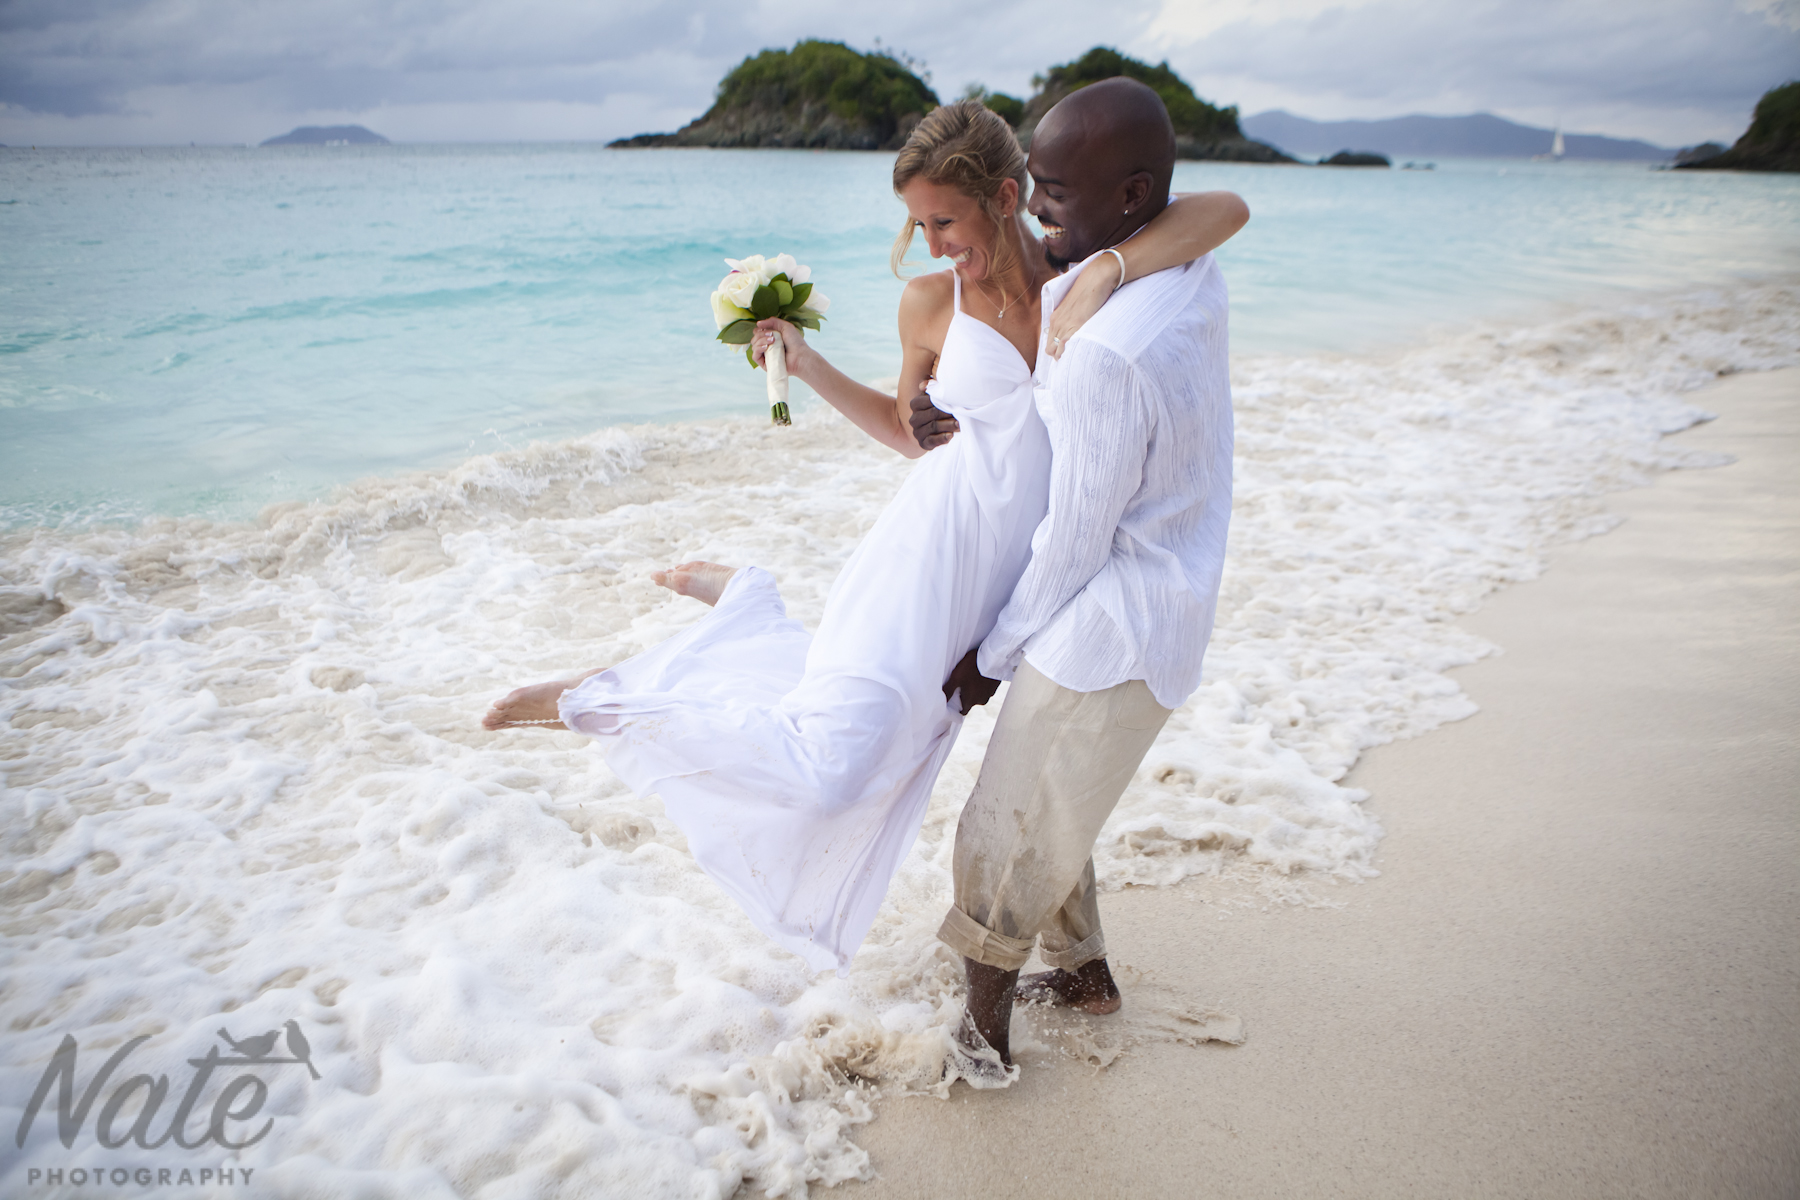 Jessica and Neville are married in Trunk Bay on St John, USVI. Photos by Nate Photography